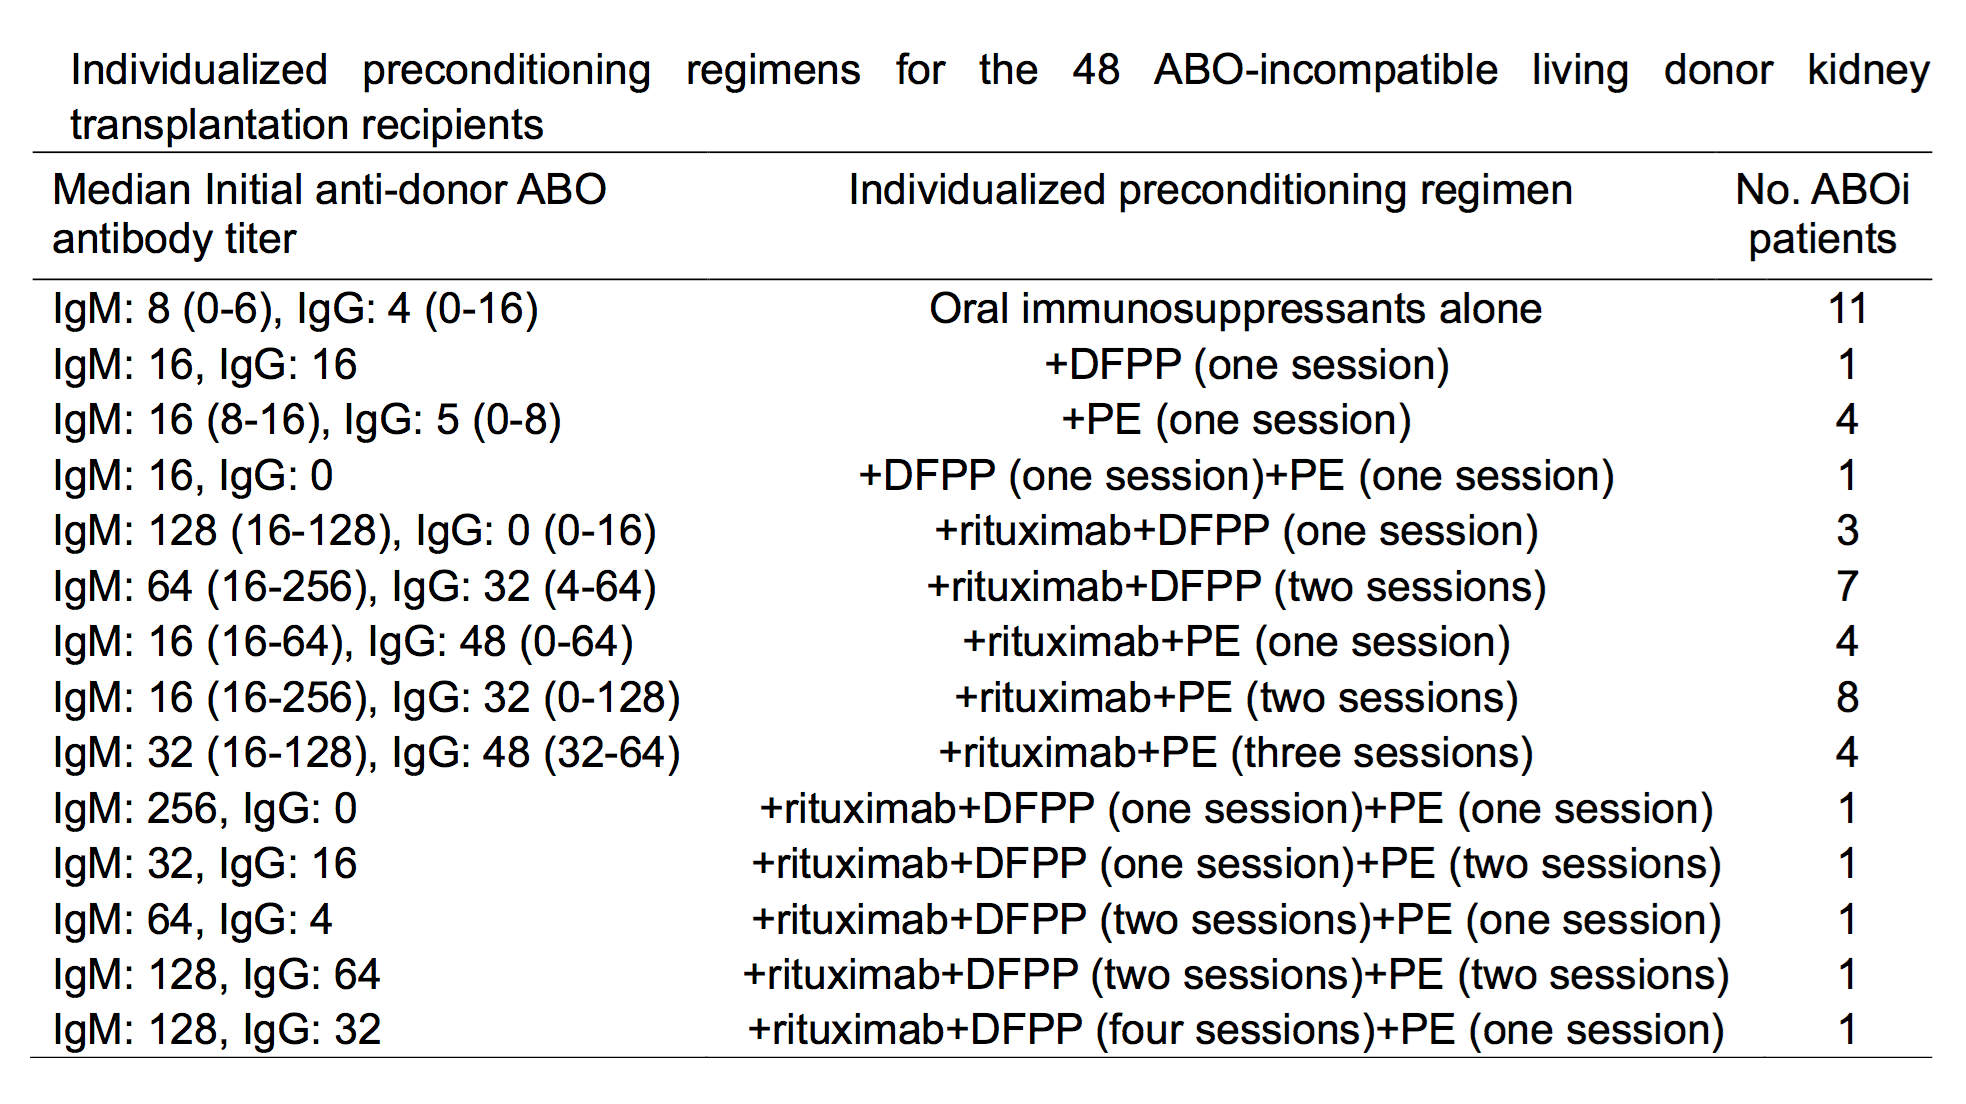 Individualized Preconditioning for ABO-Incompatible Living